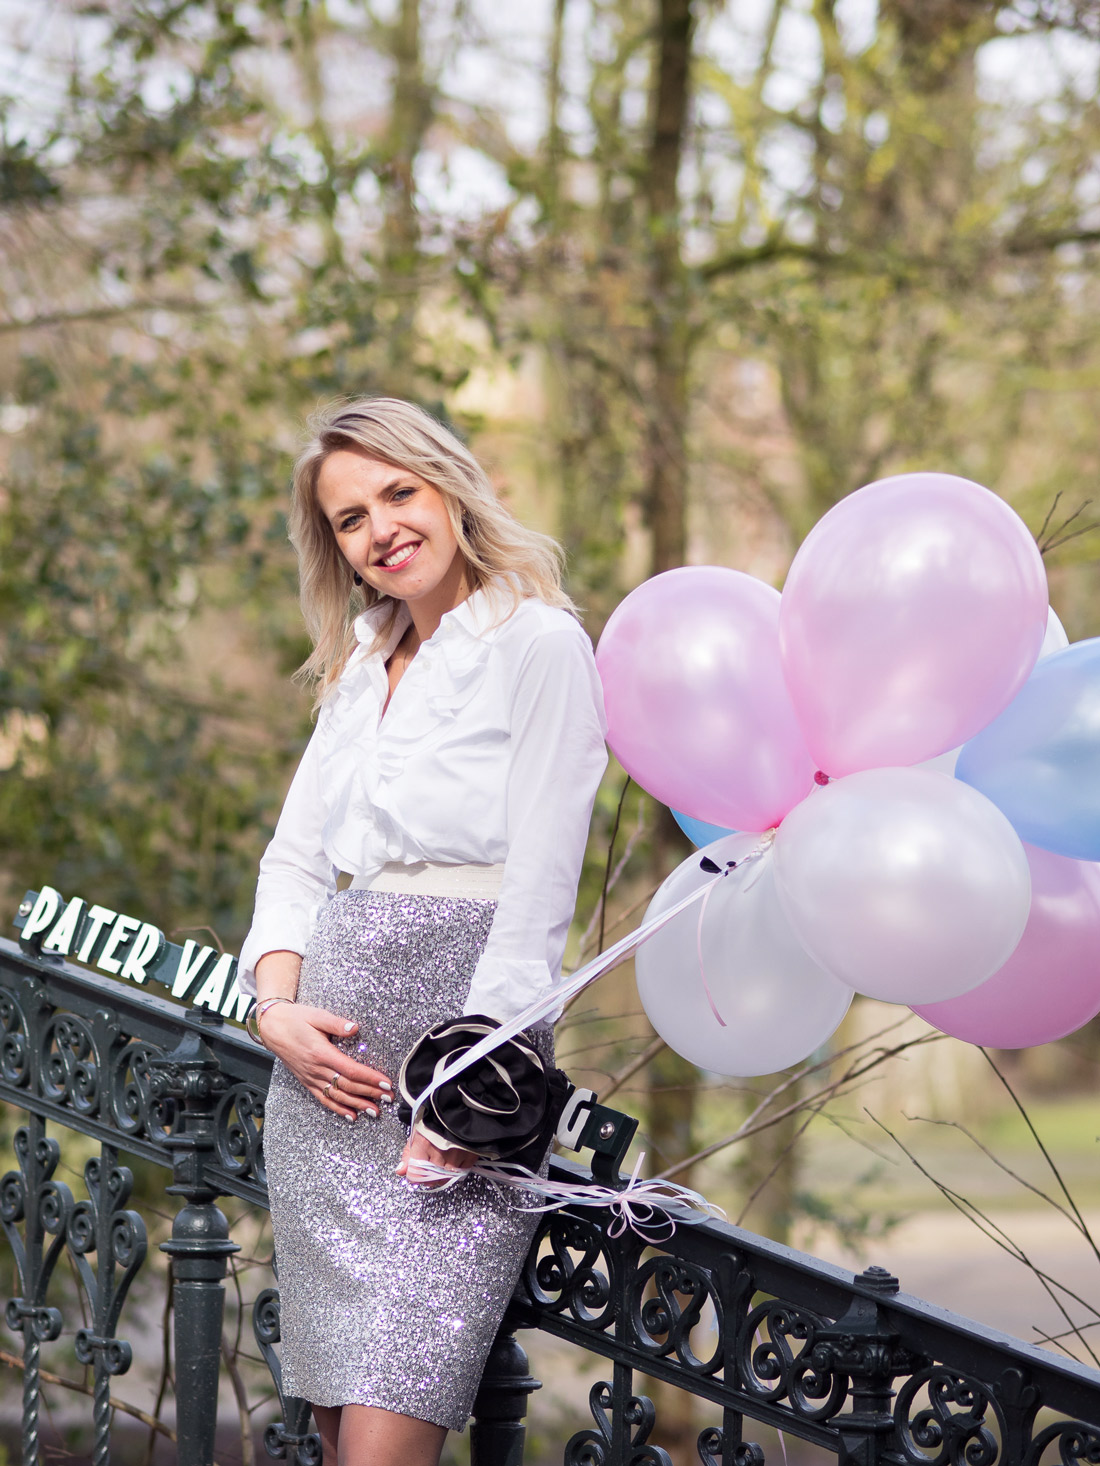 Bag-at-you---Blogger---Pregnancy-style---Marinke-Davelaar-Fotografie